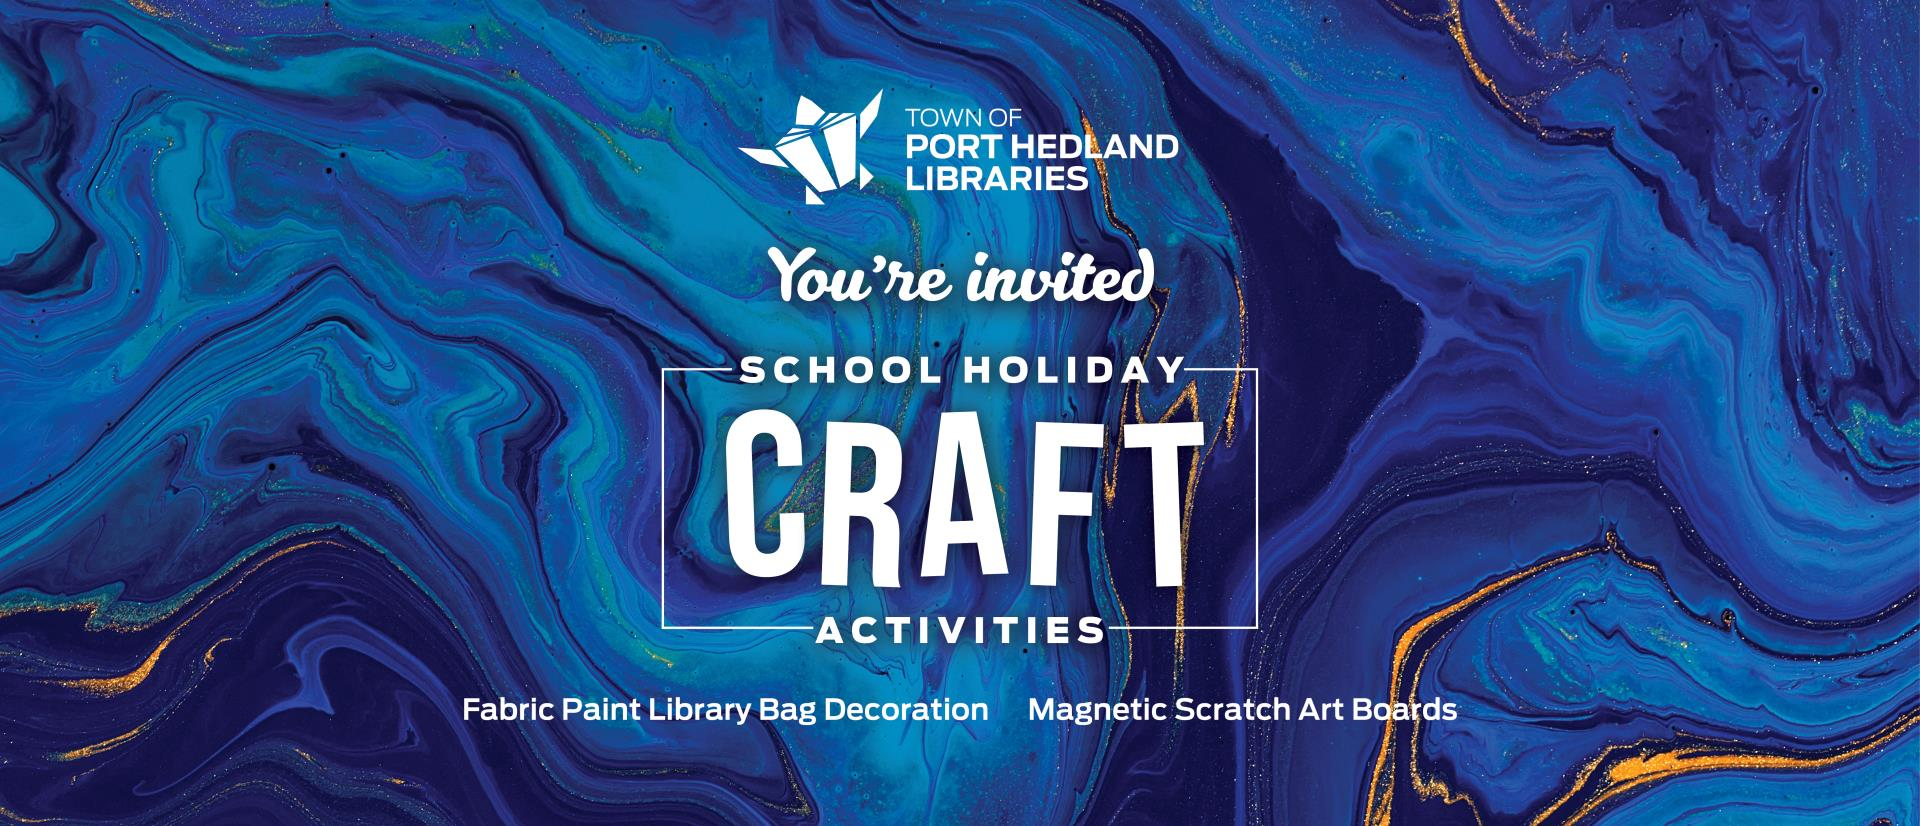 Port Hedland Libraries School Holiday Craft Activities